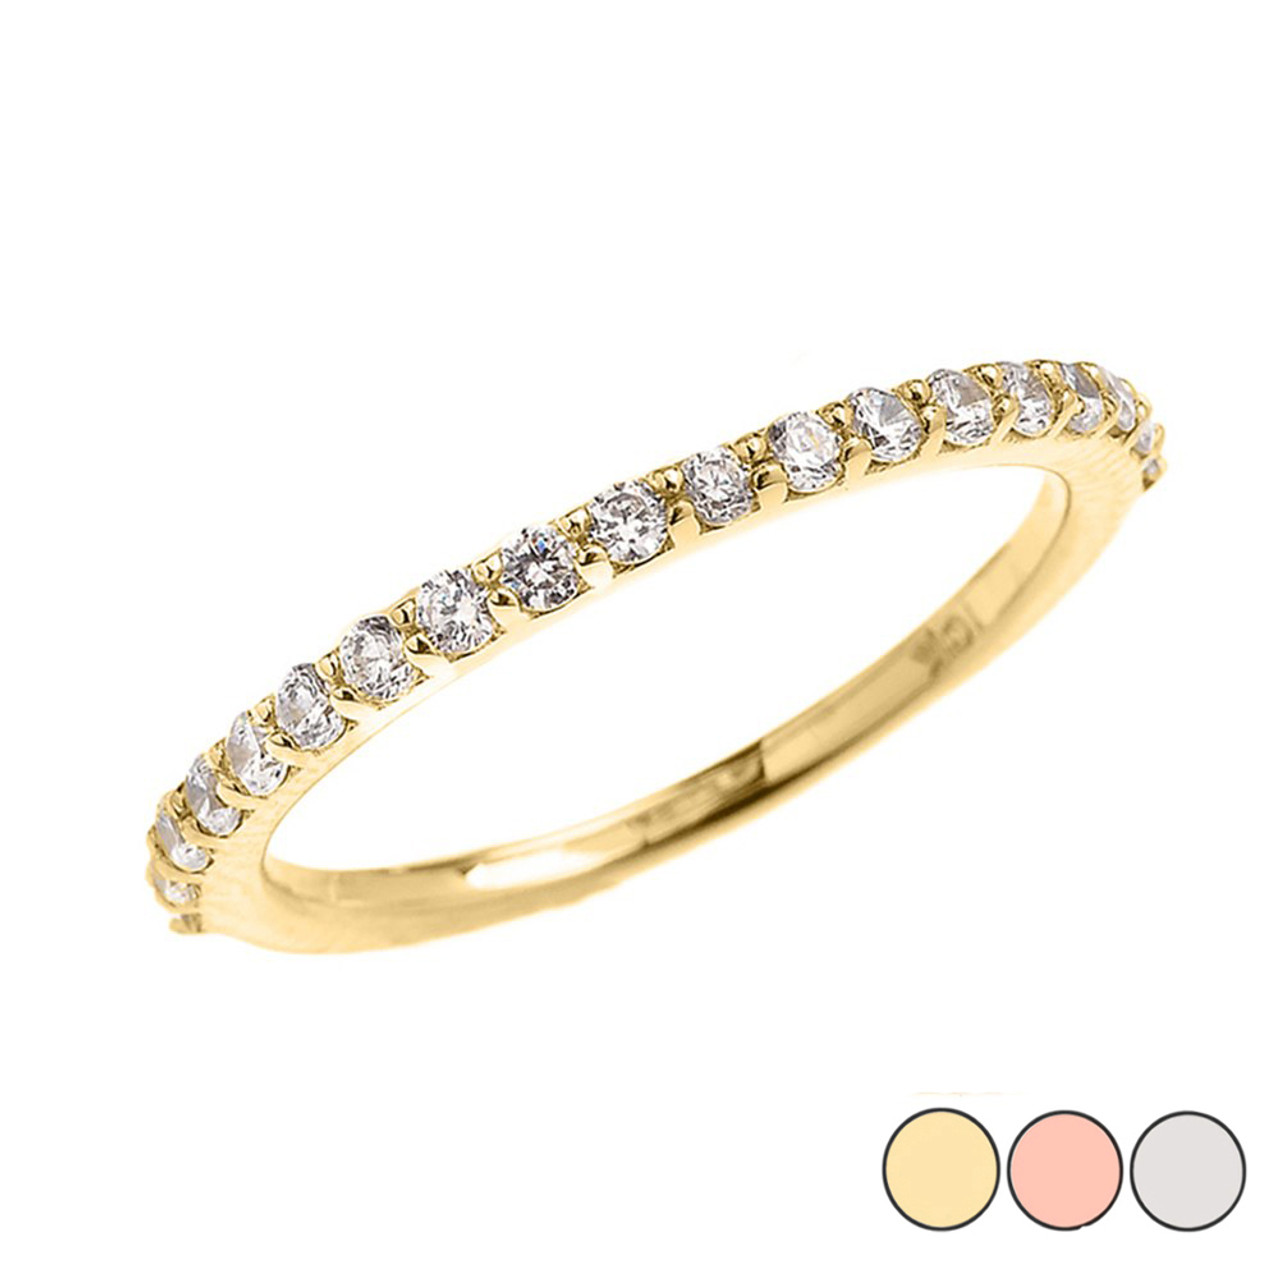 96196bc3dde5b7 Beautiful Dainty CZ Wedding Band in Gold (Yellow/Rose/White)